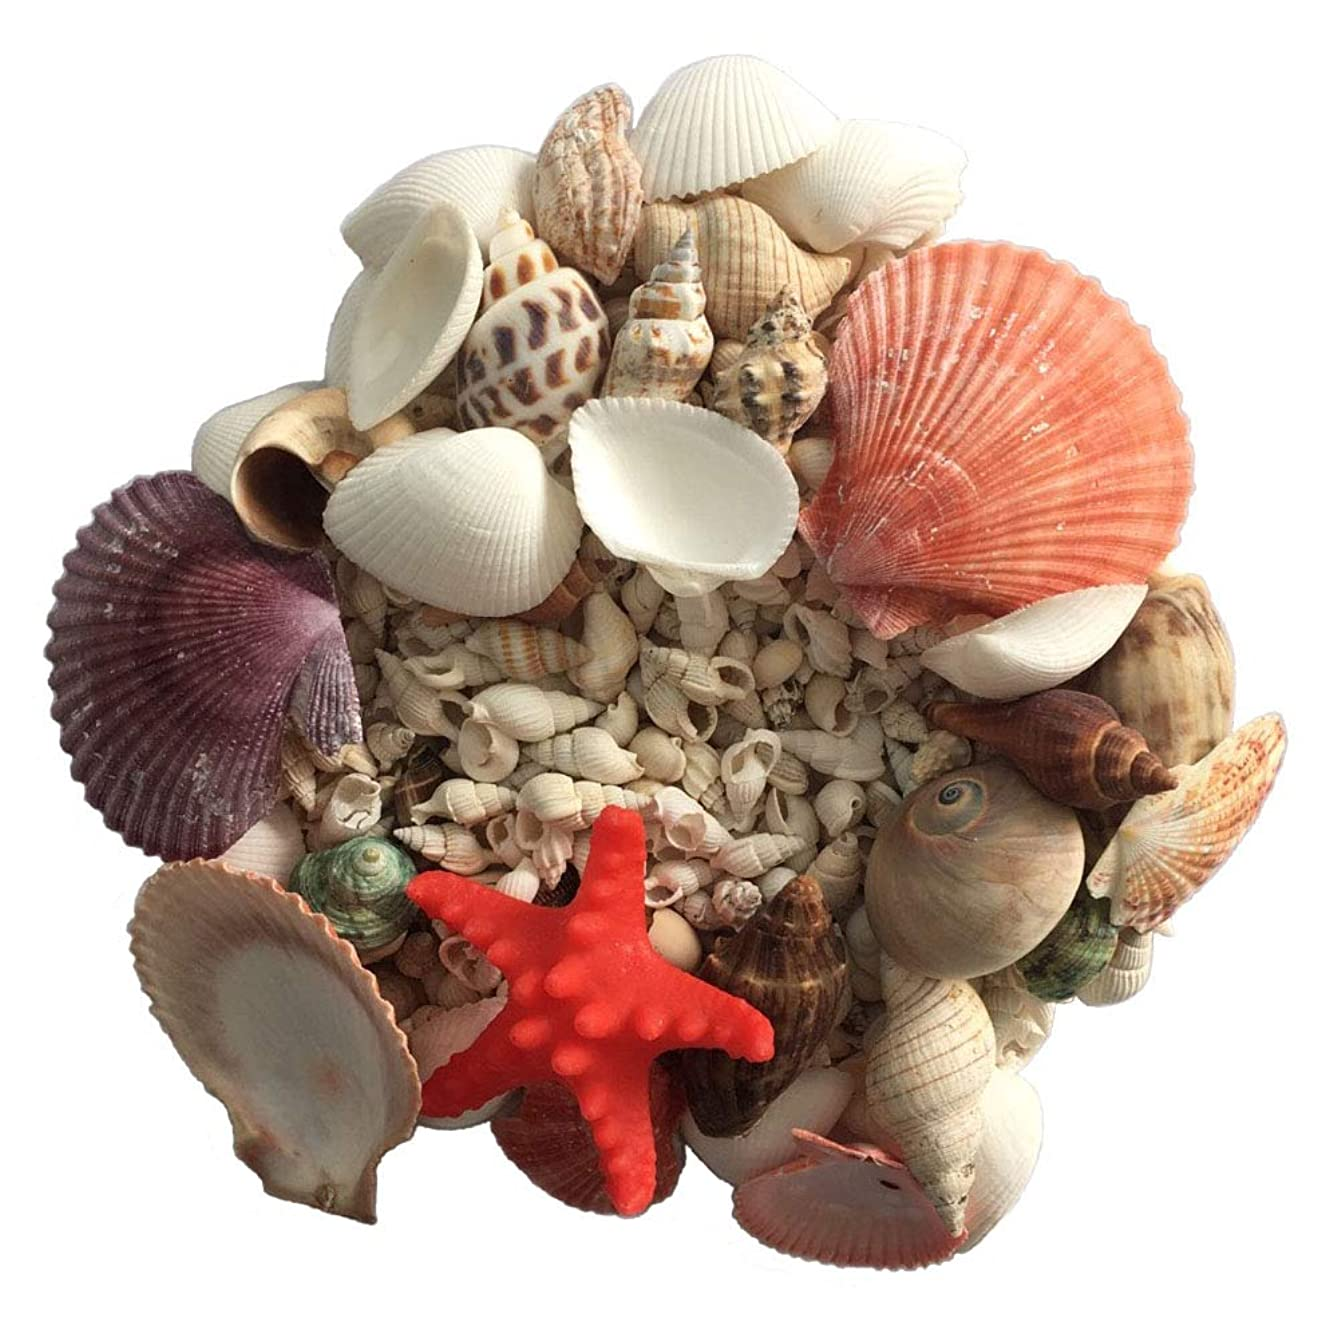 PIVBY Sea Shells Mixed Tiny Miniature Beach Seashells Candle Making,Home Decorations, Beach Theme Party Wedding Decor, DIY Crafts, Fish Tank and Vase Fillers (14oz)